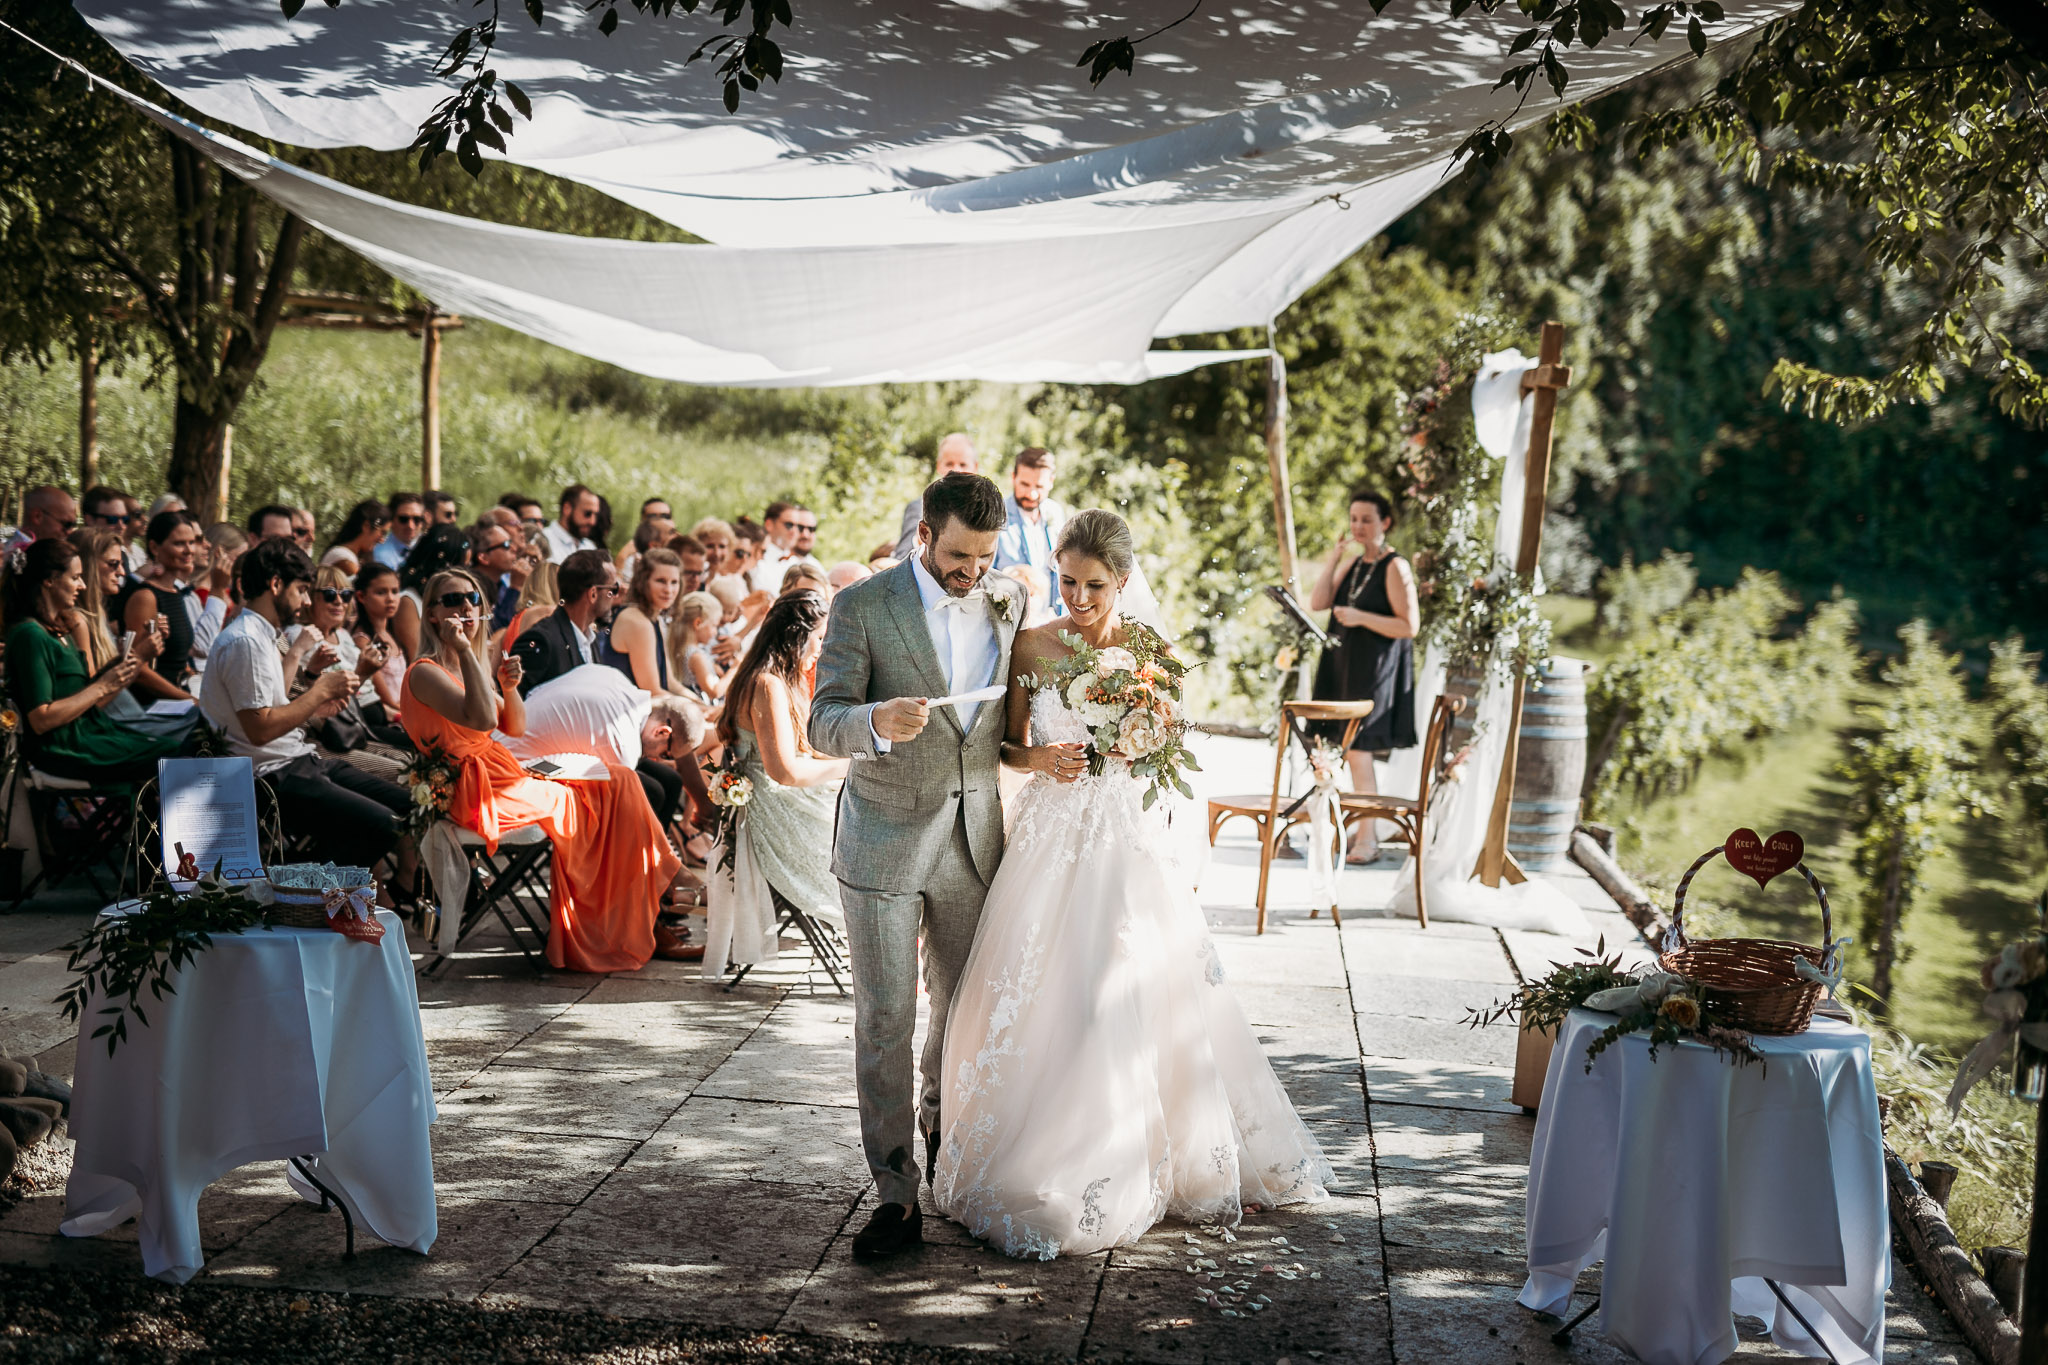 Bride and groom walking away from the civil ceremony at La Villa Hotel in Italy.